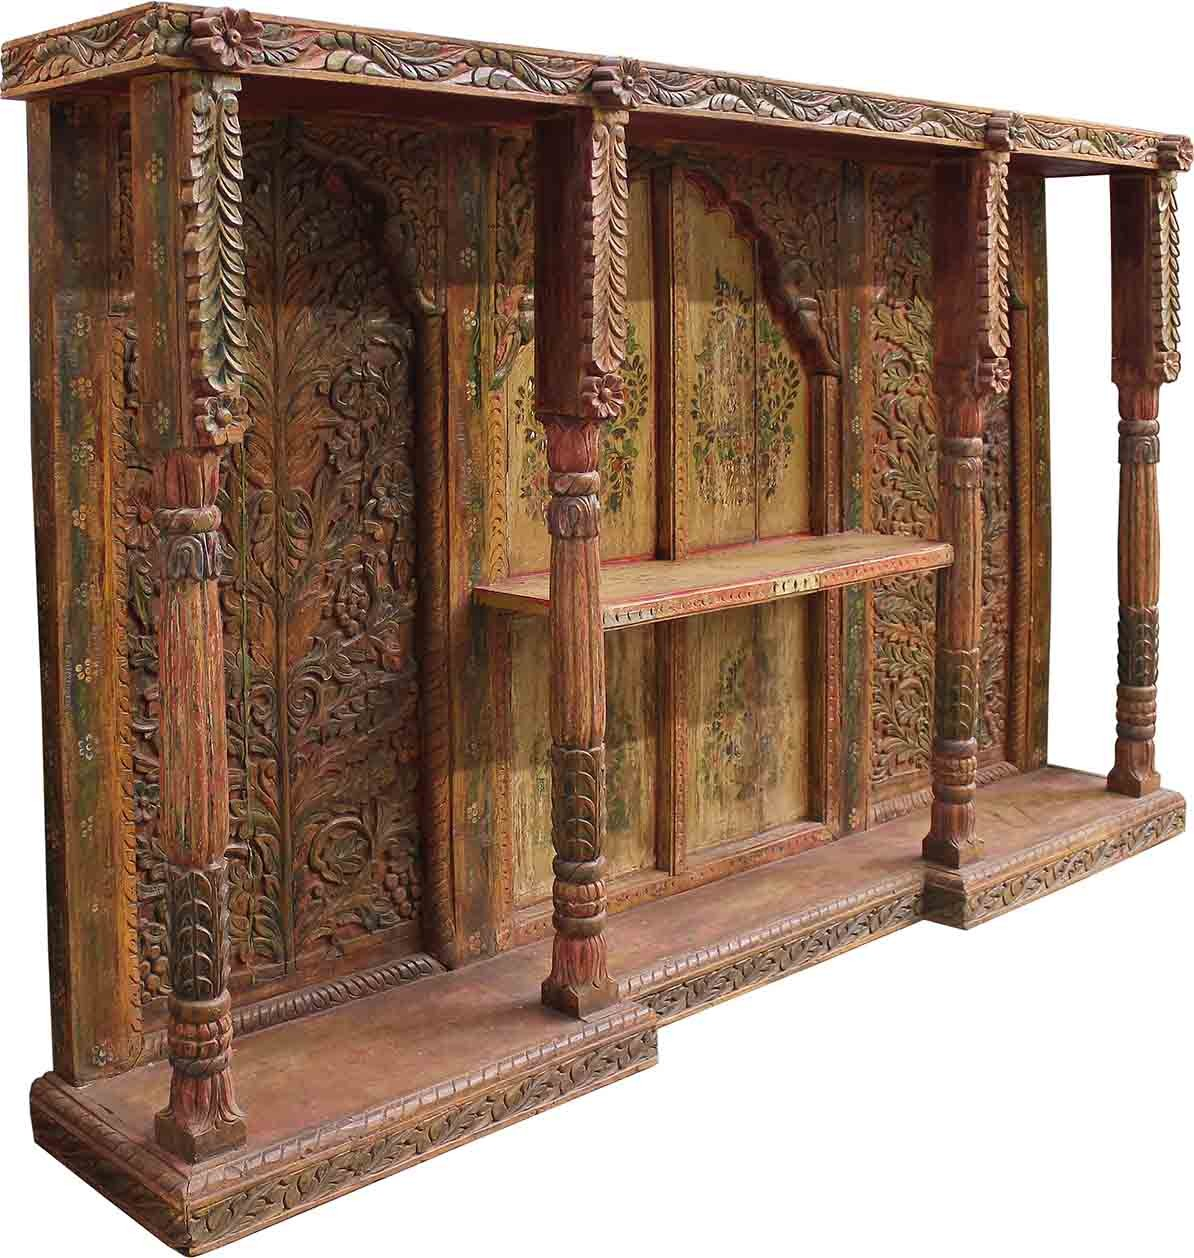 ... Antique Carved & Painted Wall Unit ... - Antique Carved & Painted Wall Unit - Cabinets - Home Furnishings